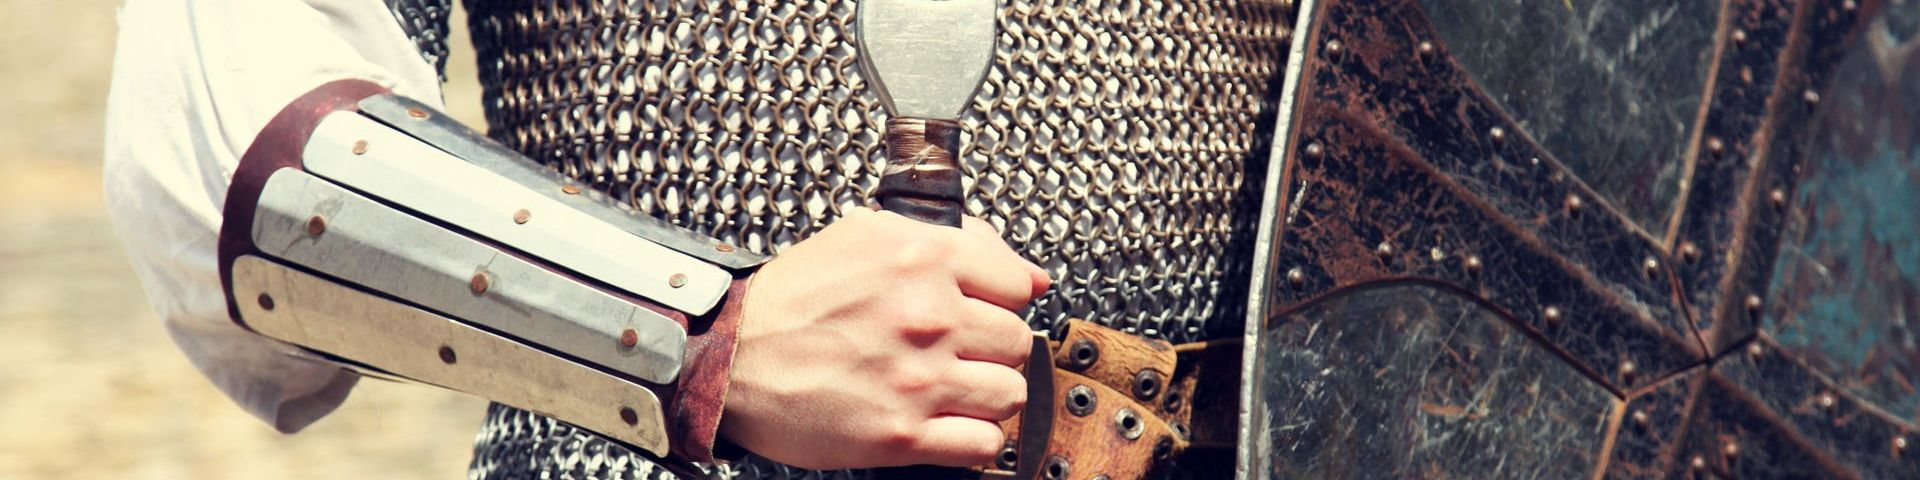 A knight's chain-mailed torso and arm, with the handle of a sword and partial shield showing.